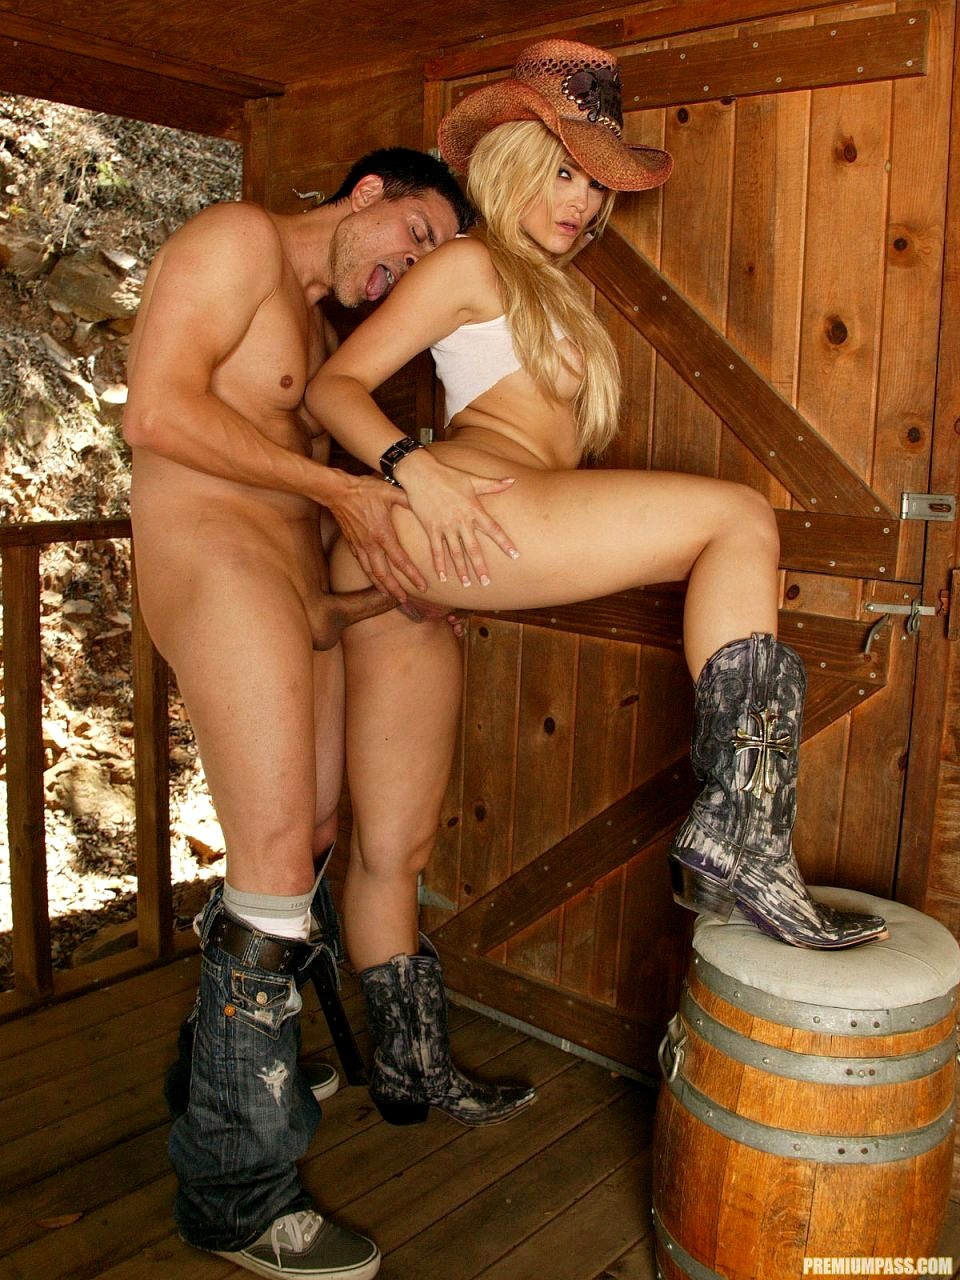 country-girl-taking-my-hard-cock-photos